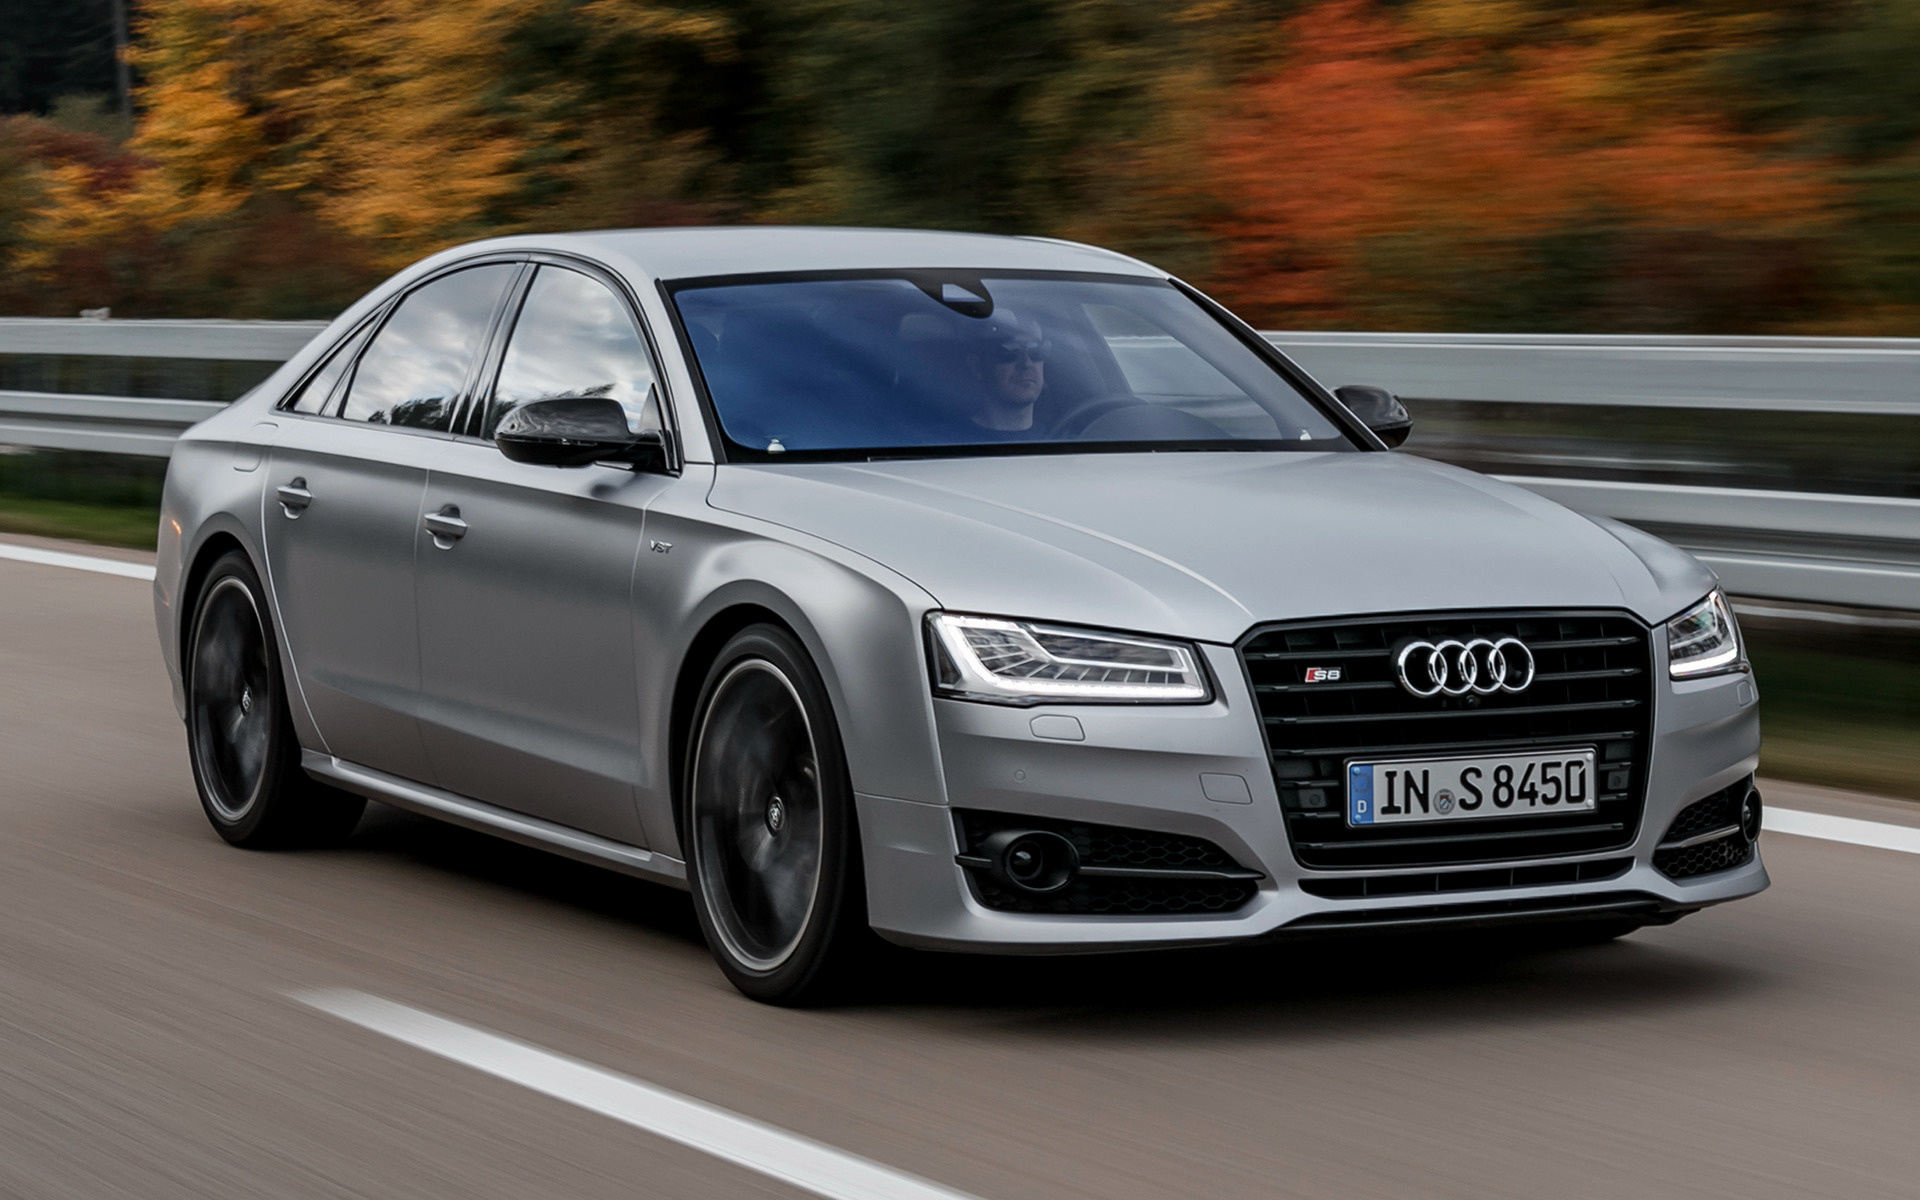 Audi S8 Wallpapers High Resolution WV43DG1 WallpapersExpertcom 1920x1200